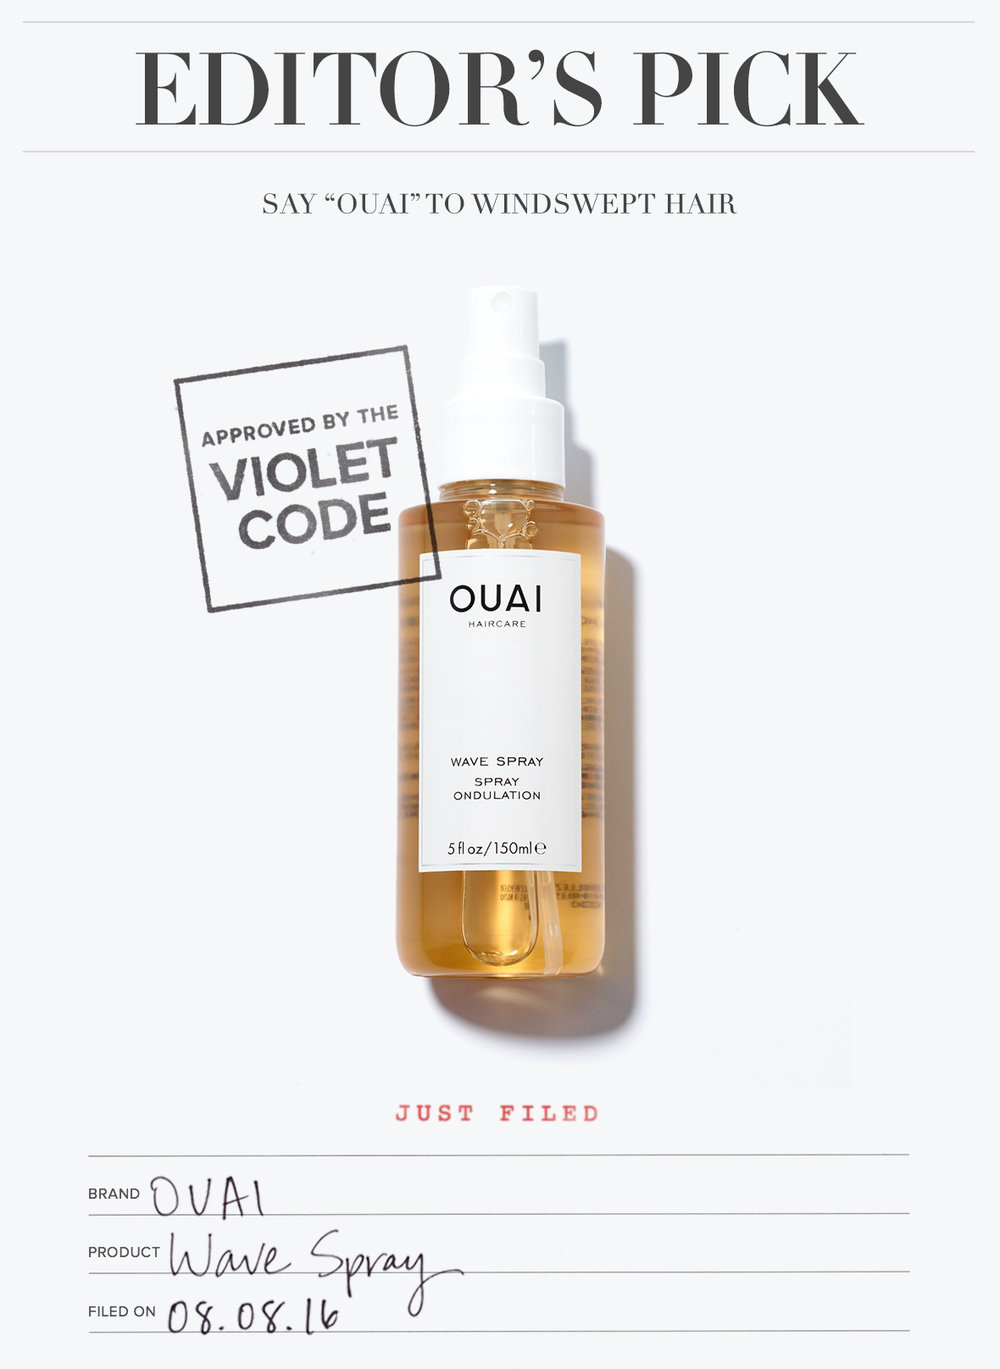 ouai-wave-spray-Email.jpg